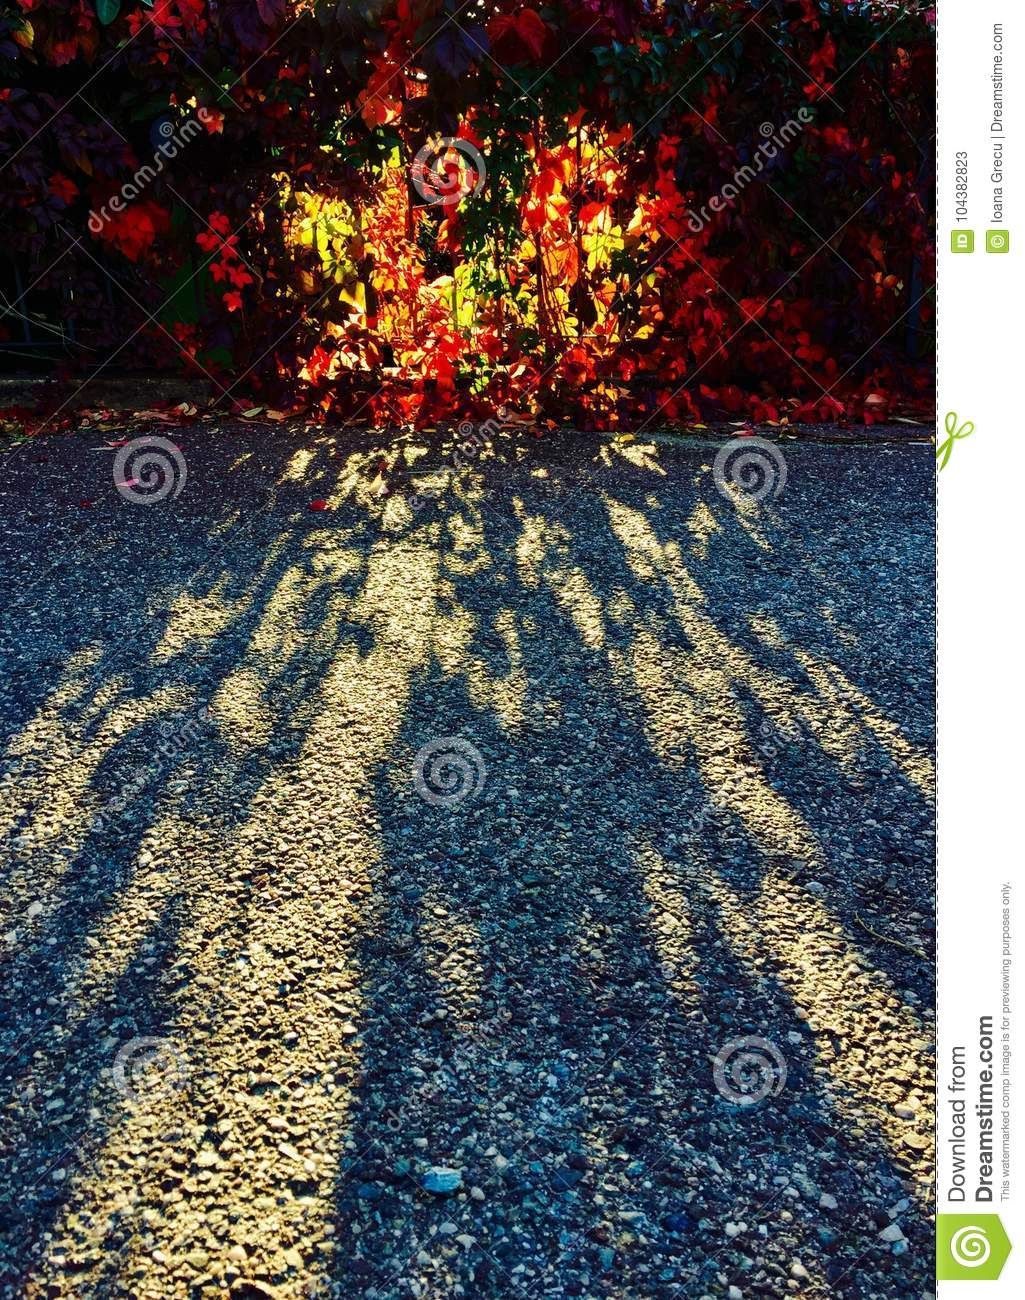 Sun filtering through colored leaves